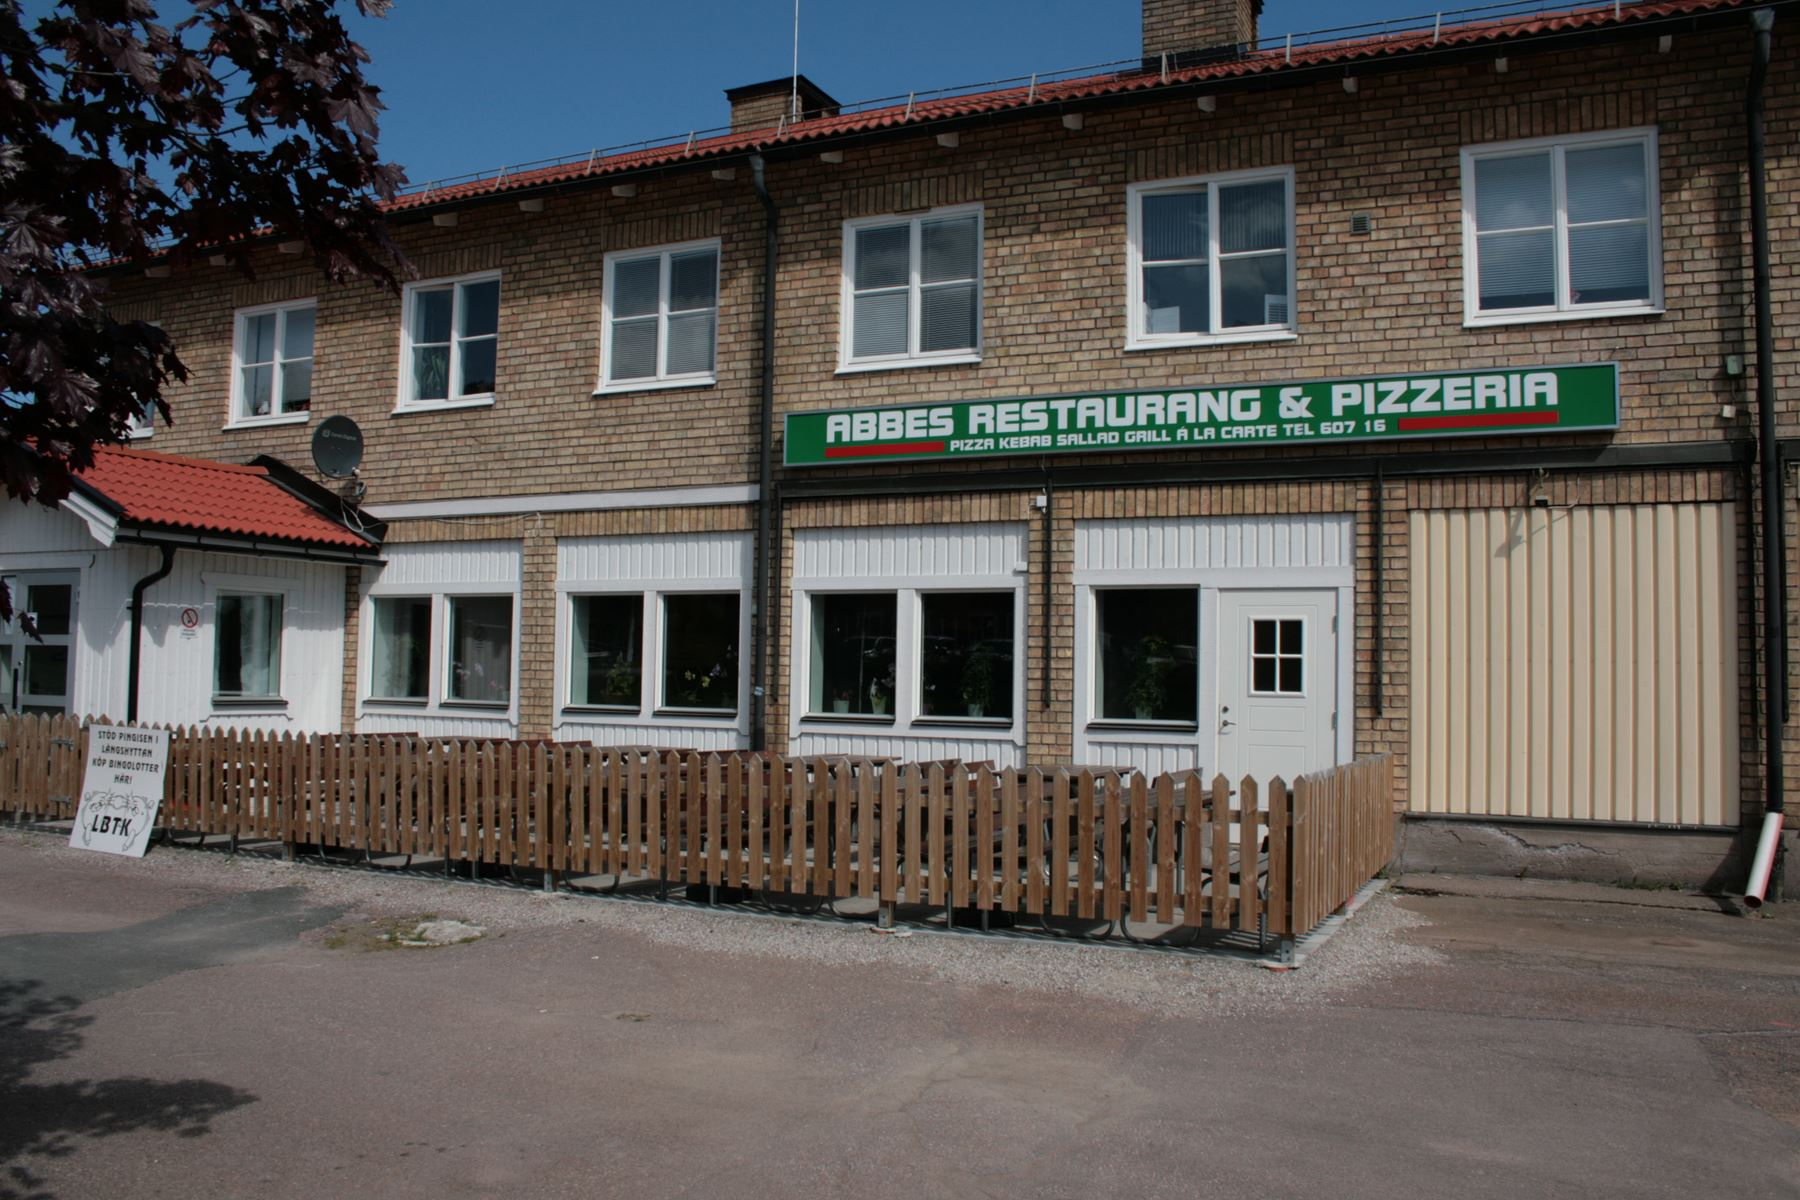 Abbes Restaurant and Pizza